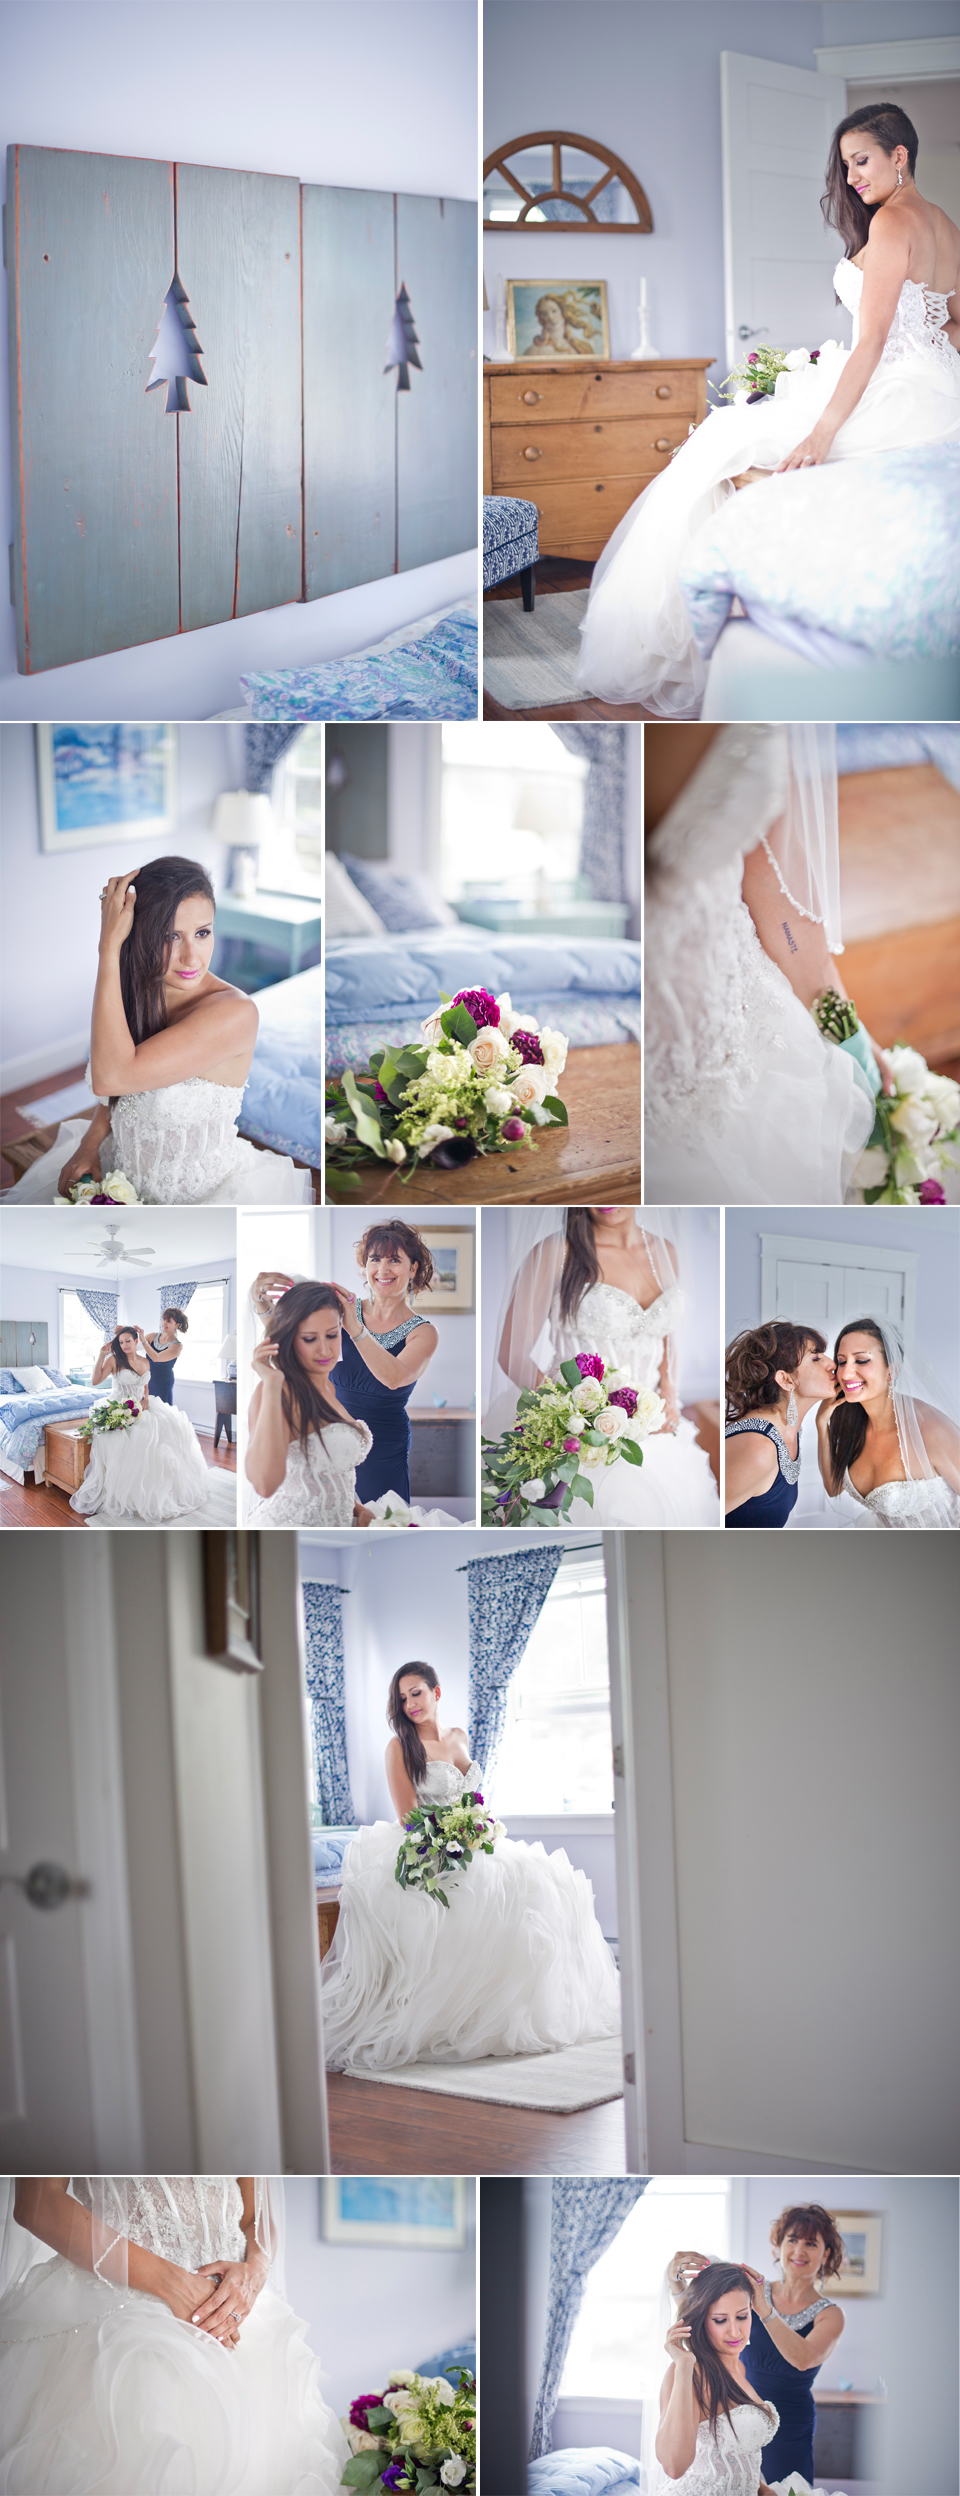 Montreal Wedding Photographer| Joie de Lavande | Knowlton | Lac Brome Quebec | LMP Wedding Photography & Videography